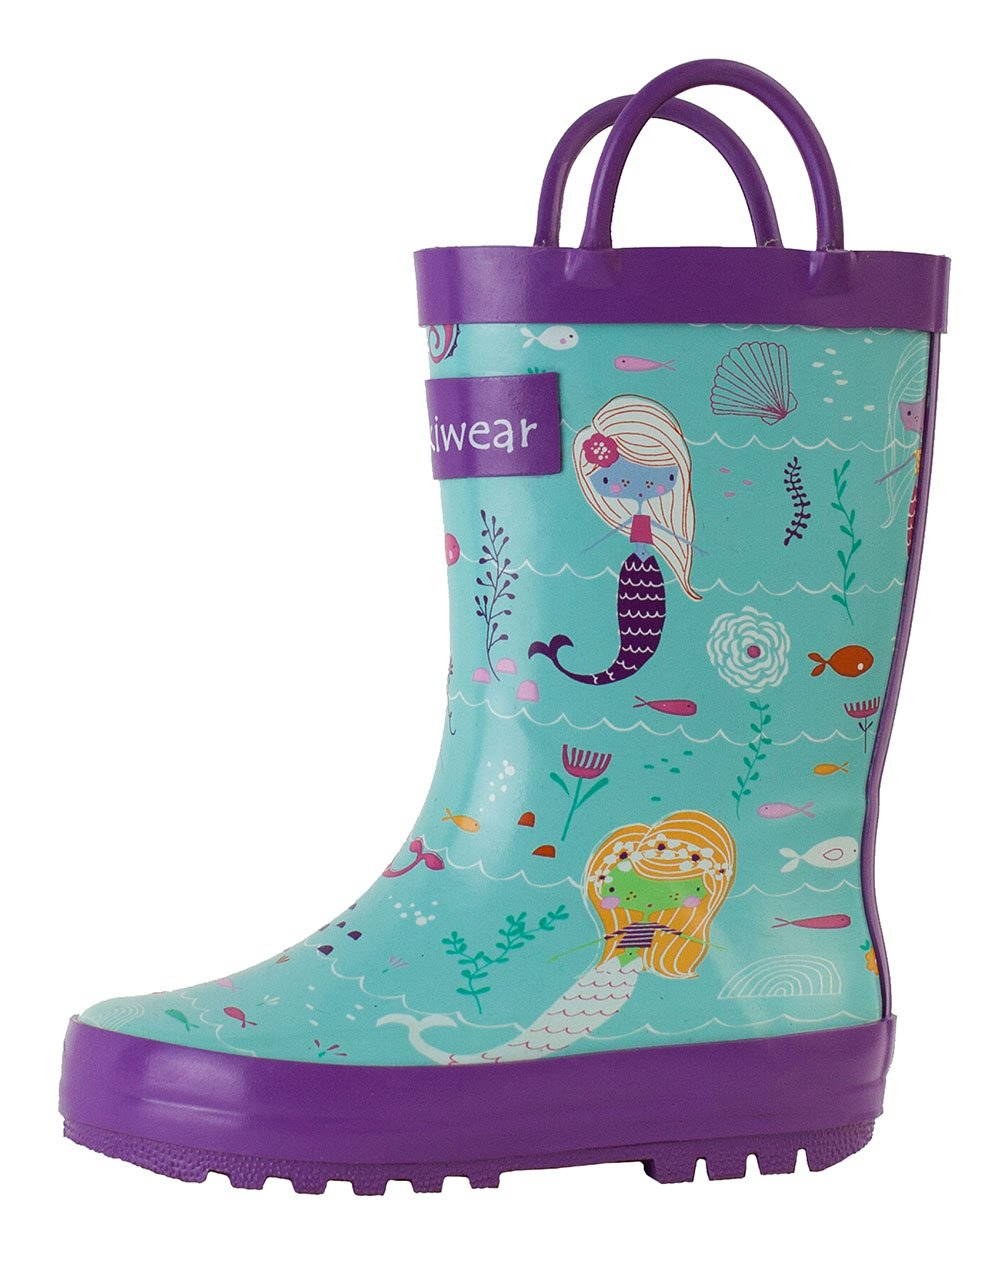 Rain Boots in Fun Bow Patterns for Toddlers and Kids Waterproof Rubber Rain Boots